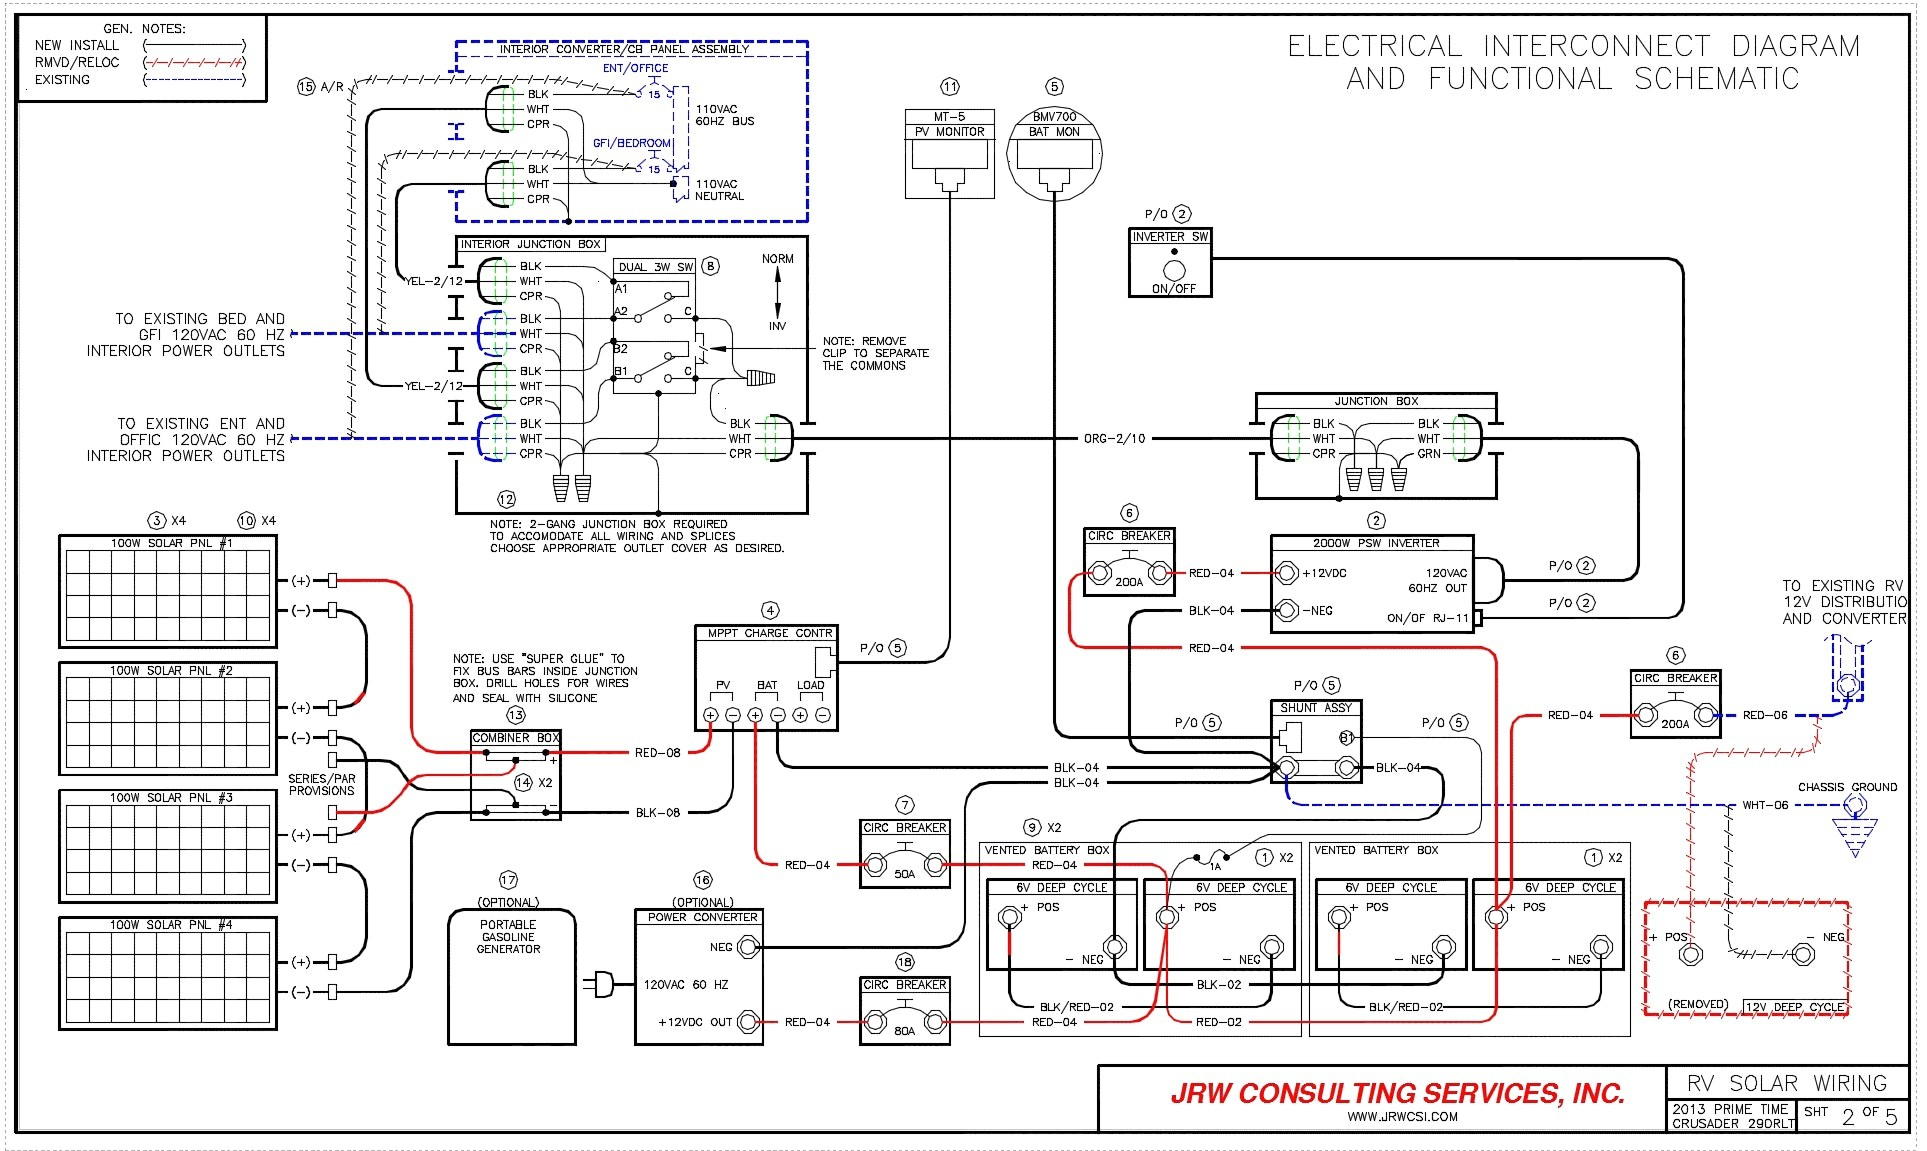 Electrical Engineering Diagram Rv Wiring Basics Wiring Diagram Of Electrical Engineering Diagram